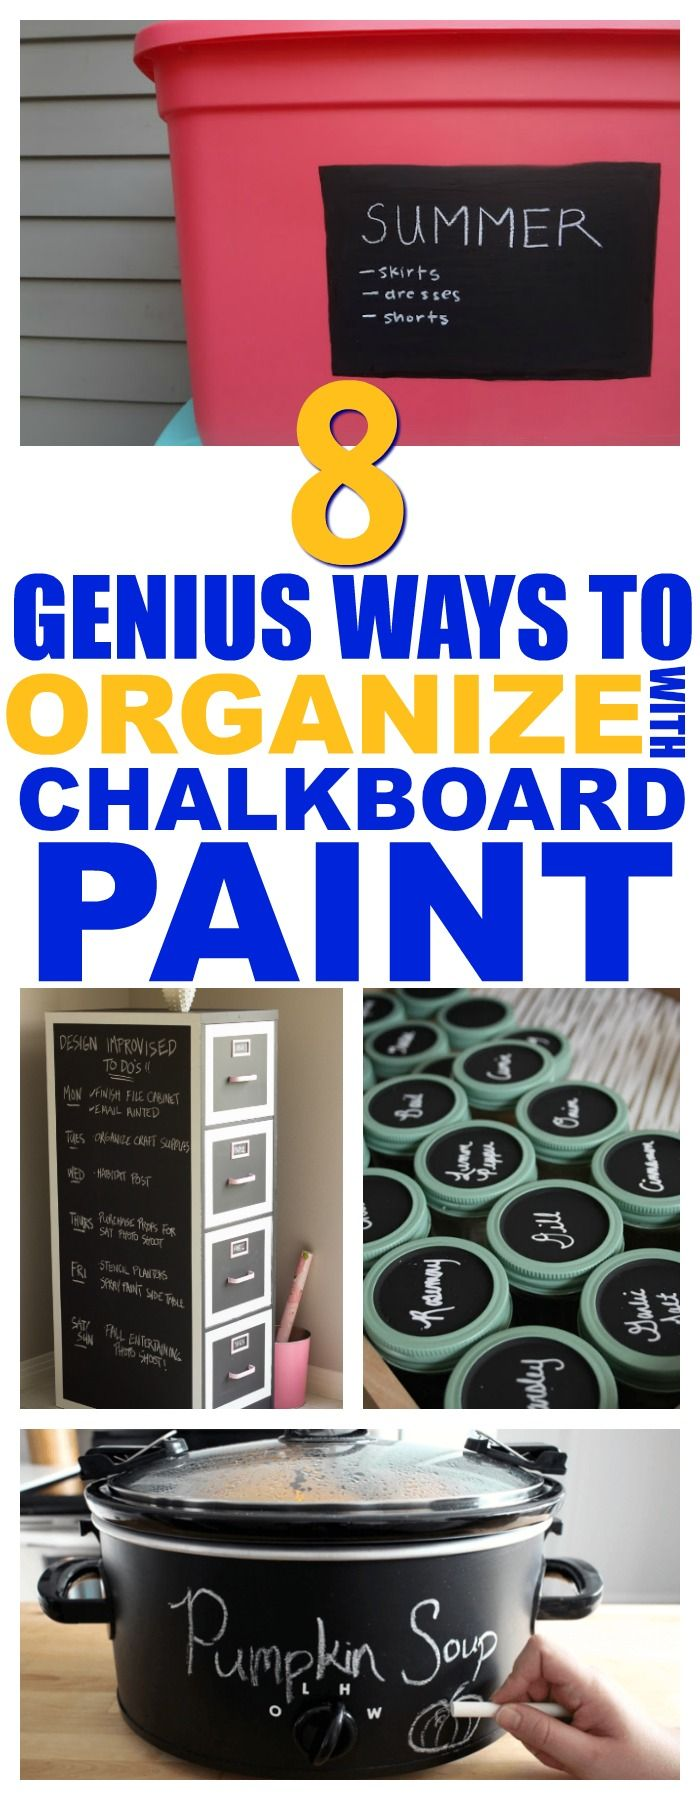 8 Chalkboard Paint Projects That Will Instantly Organize Your Home - That Vintage Life